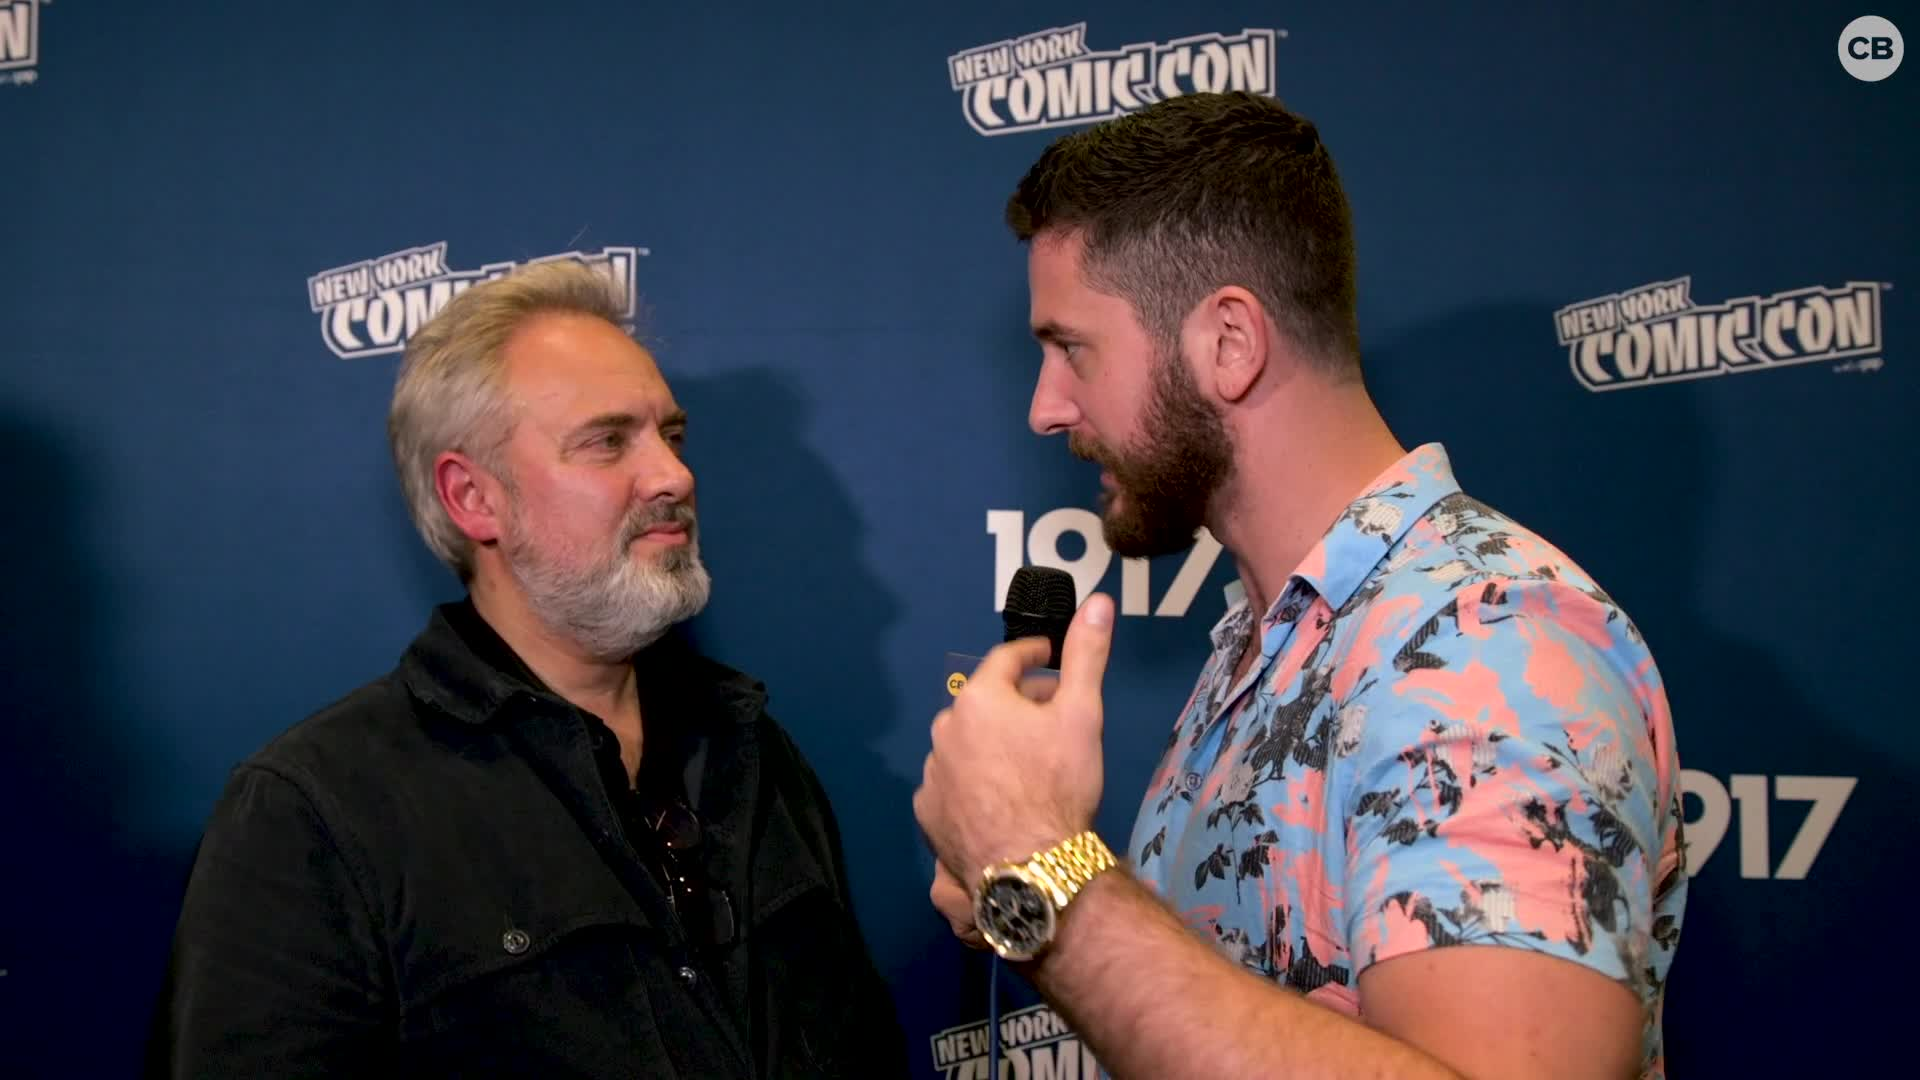 Sam Mendes - NYCC 2019 Exclusive Interview screen capture